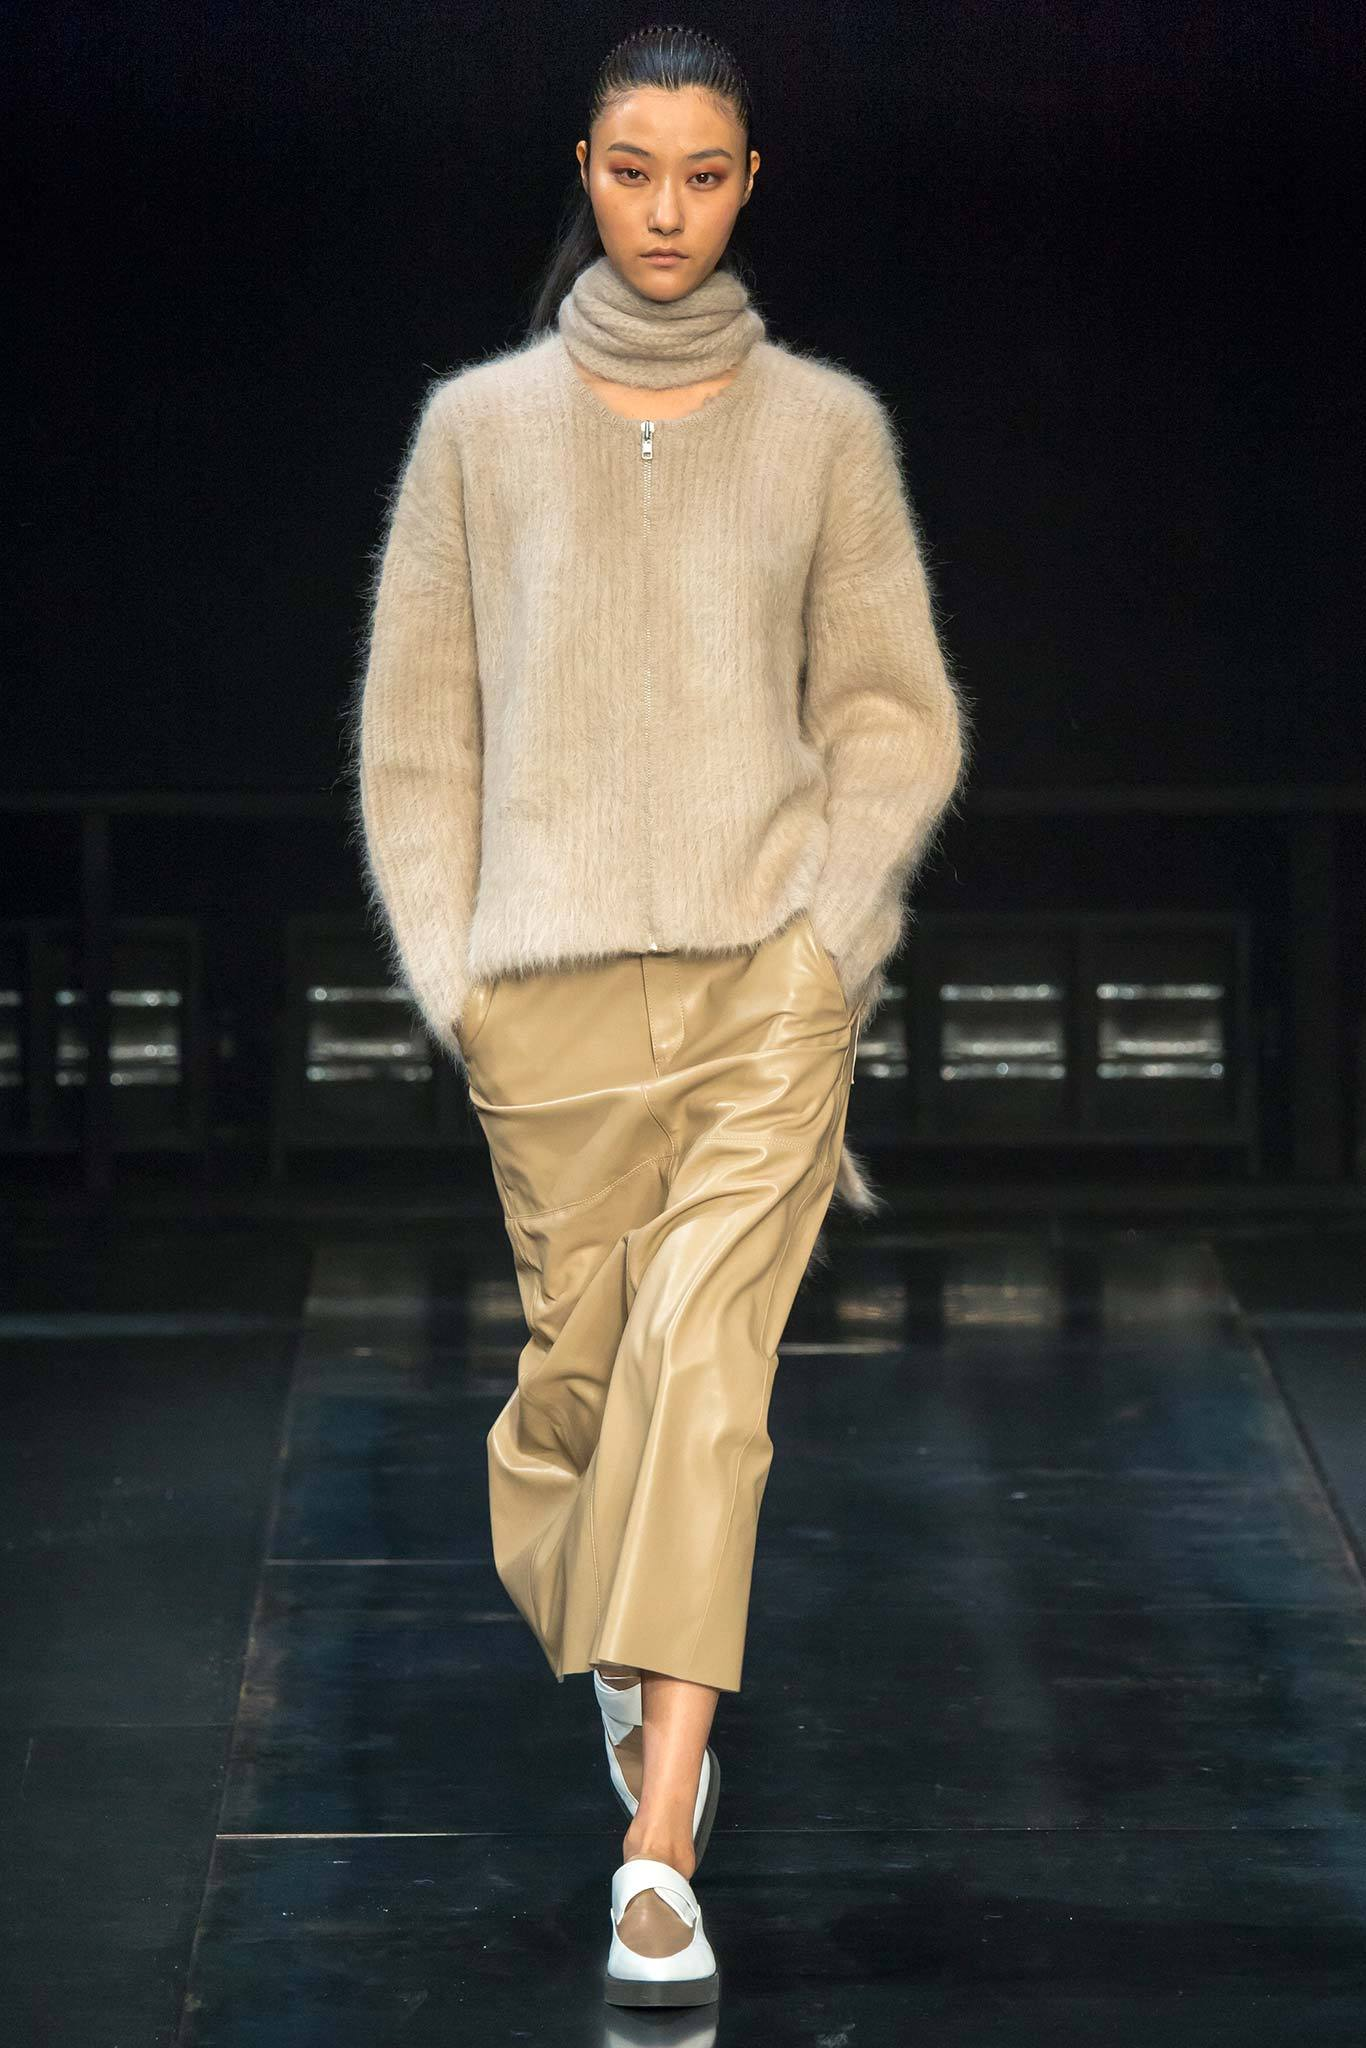 StyleAndMinimalism | Collection Best Bits | What To Wear From AW14 | Helmut Lang AW14 | Beige Mohair Cardigan, Beige Caramel Leather Midi Pencil Skirt